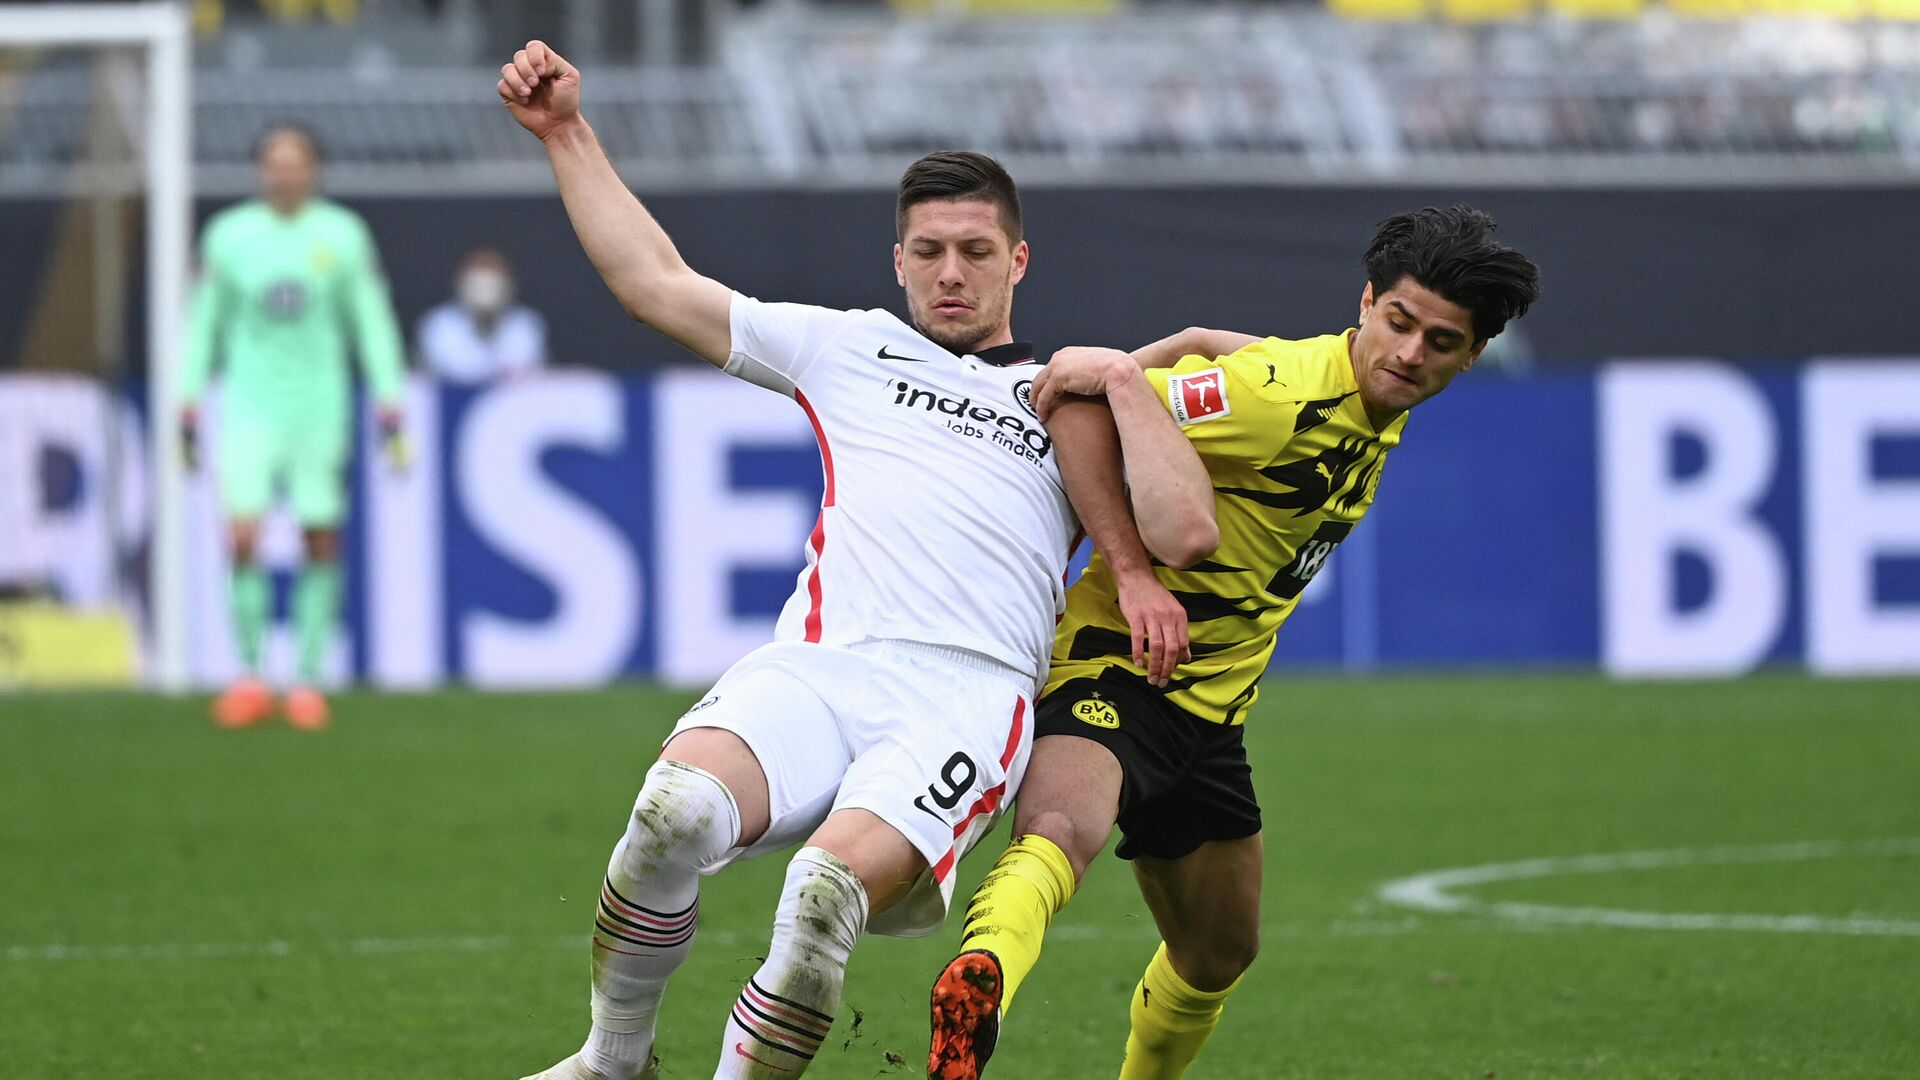 Frankfurt's Serbian forward Luka Jovic (L) and Dortmund's German midfielder Mahmoud Dahoud vie for the ball during the German first division Bundesliga football match between Borussia Dortmund and Eintracht Frankfurt in Dortmund, western Germany, on April 3, 2021. (Photo by Ina Fassbender / POOL / AFP) / DFL REGULATIONS PROHIBIT ANY USE OF PHOTOGRAPHS AS IMAGE SEQUENCES AND/OR QUASI-VIDEO - РИА Новости, 1920, 09.04.2021